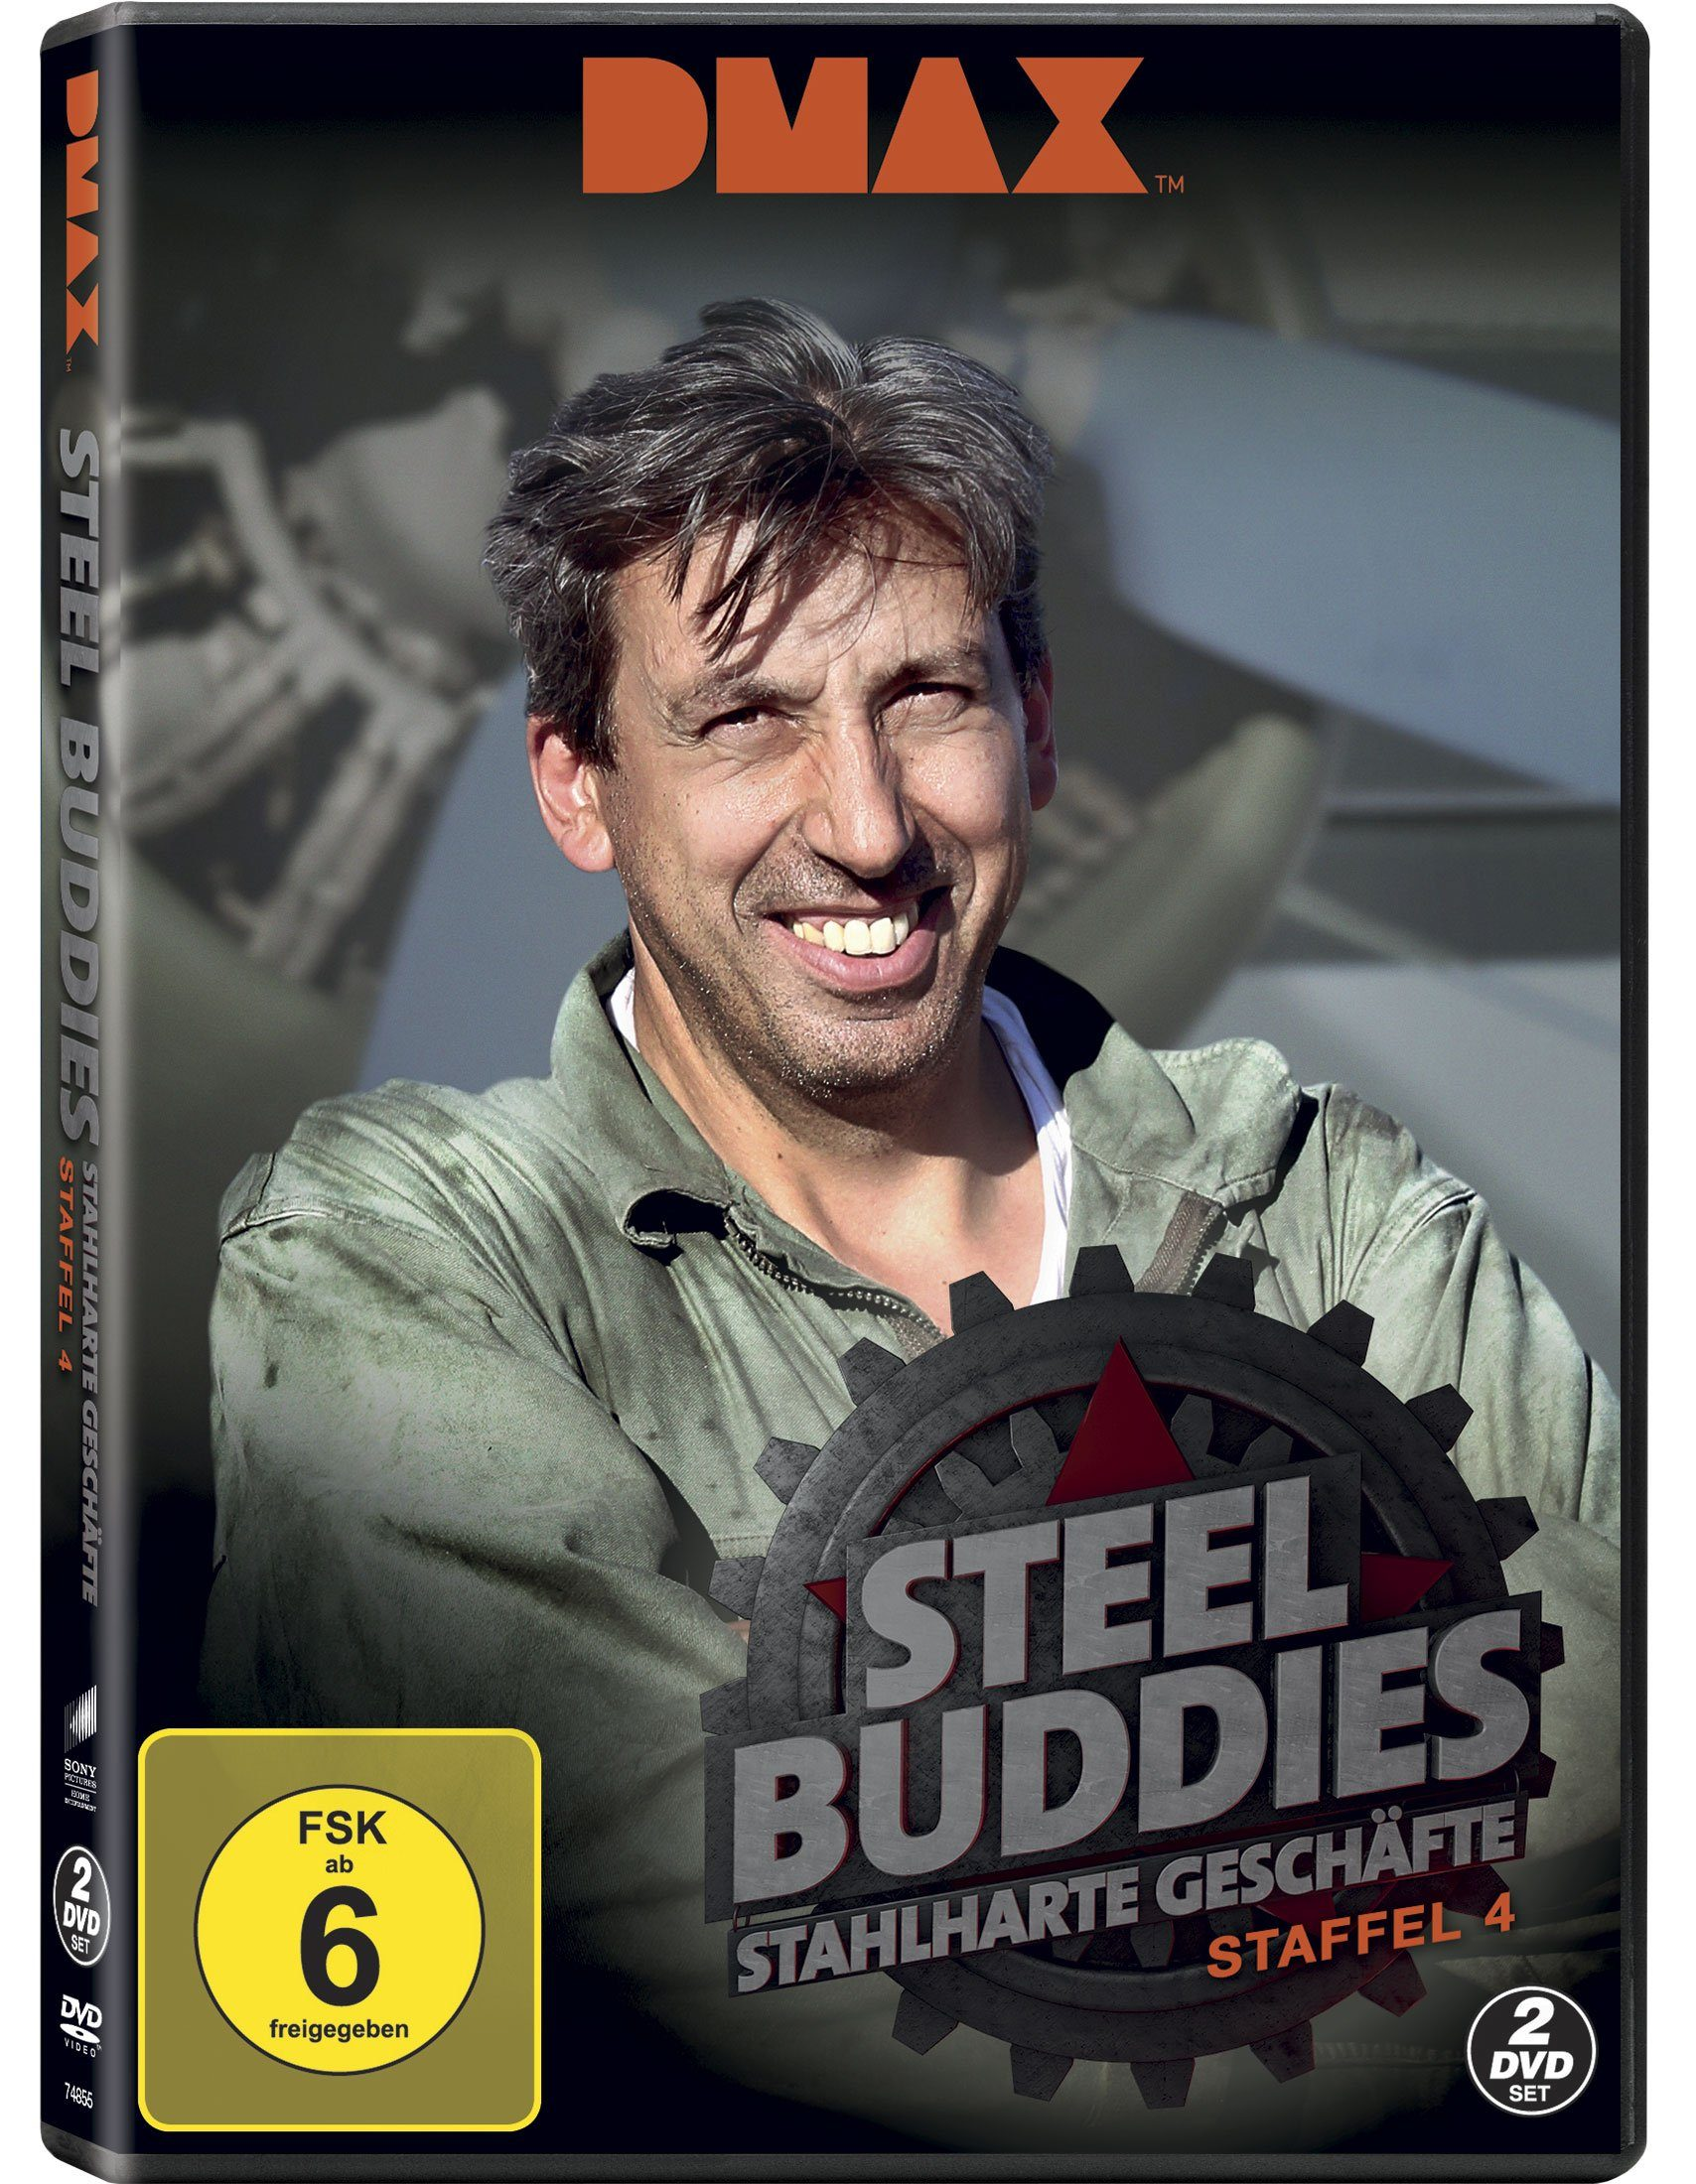 Sony Pictures DVD »Steel Buddies - Staffel 4 (DMAX - 2 Discs)«